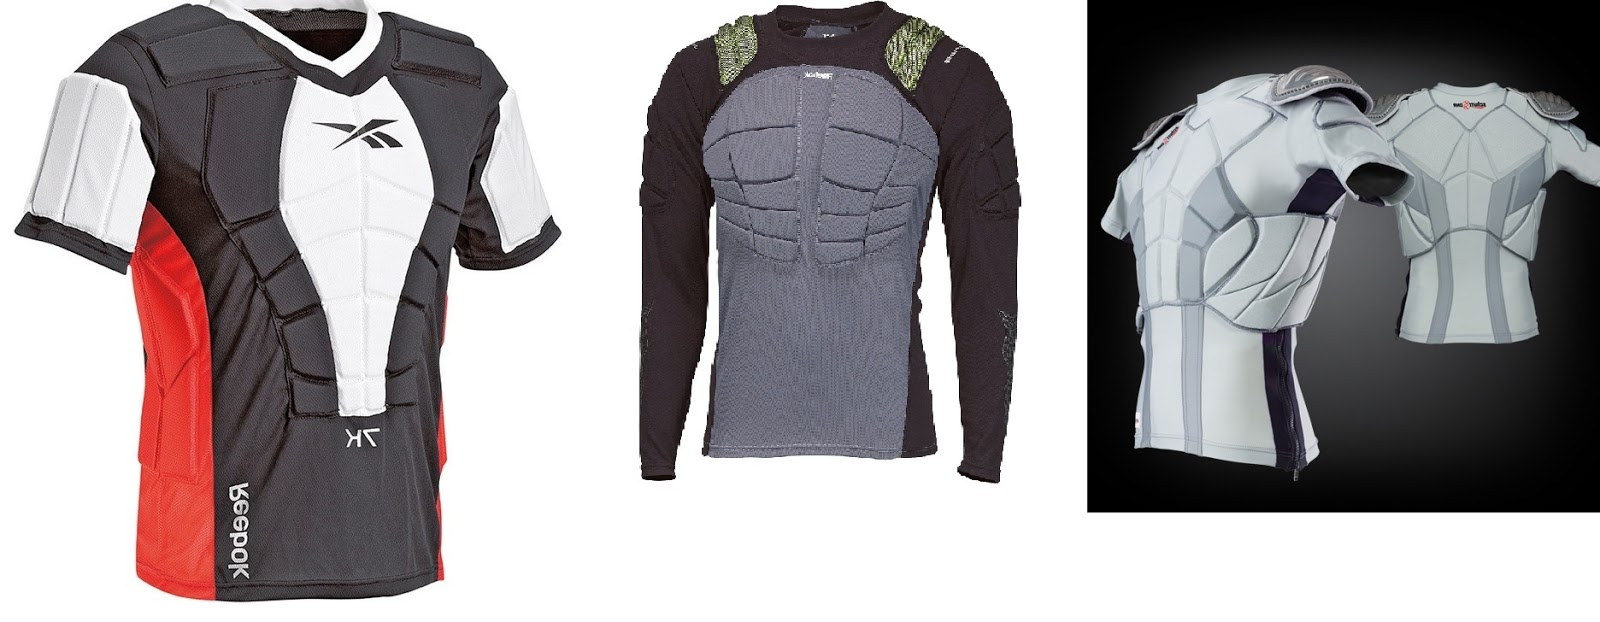 T shirt protection paintball